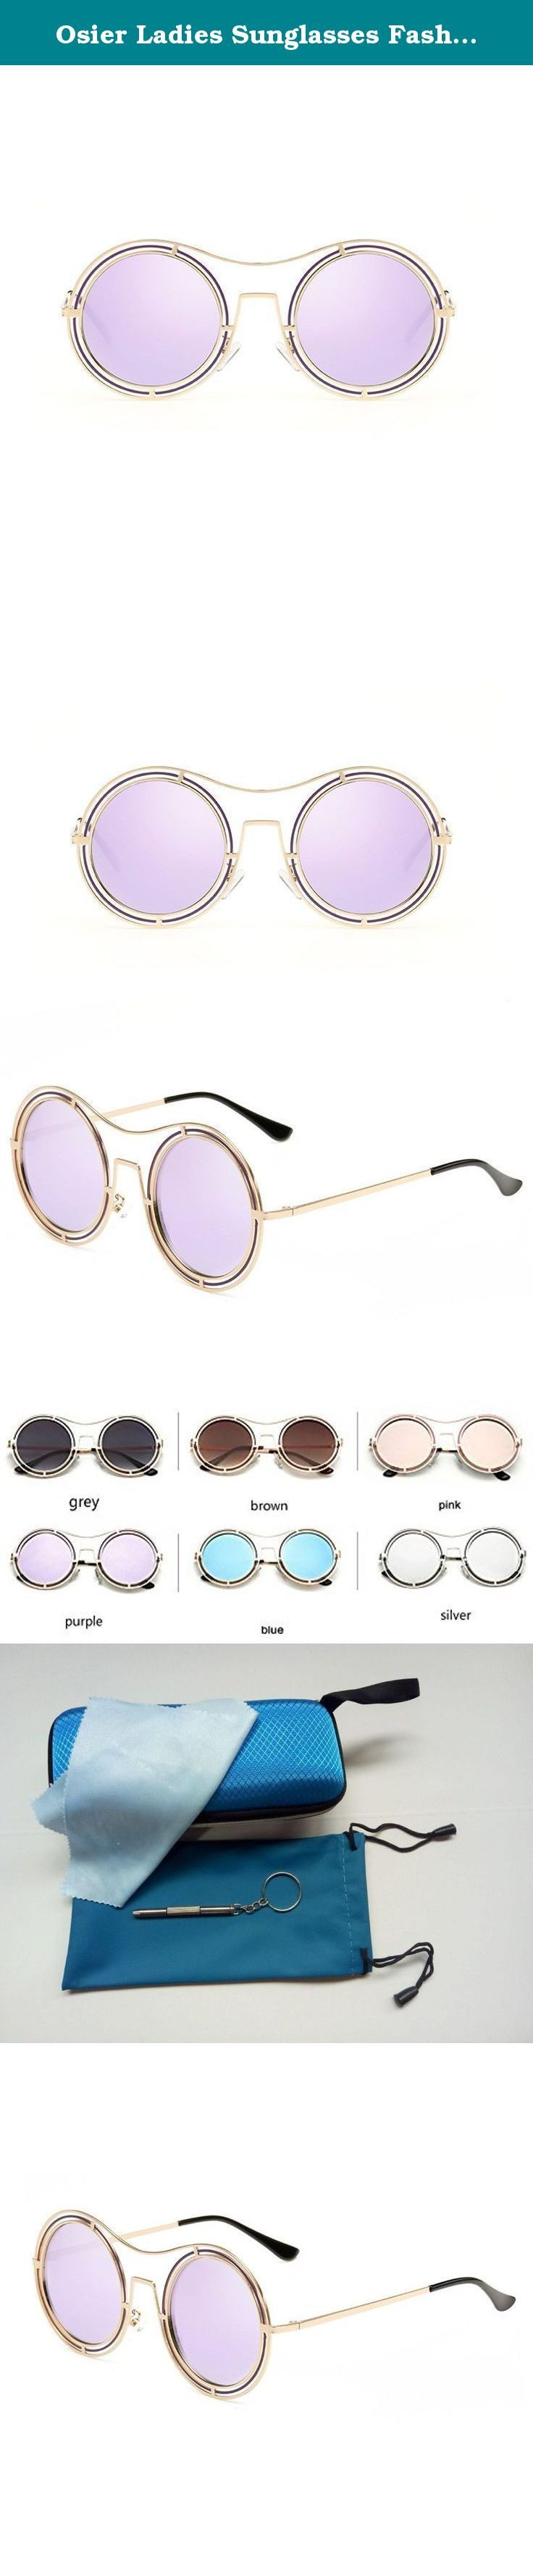 Osier Ladies Sunglasses Fashion Round Mirrored Lens shades for Driving Fishing. Best Quality Sunglasses Exquisite Quality: With sophisticated technology and good materials, made a good quality sunglasses. Comfortable Mirror Legs: Arc design, wear comfort,do not clip the face,bring quality wear experience. Nose Pads: Selection of silicone nose pads,comfortable design, long time wear nose also won't have a sense of oppression. Reinforced Hinge: Cupronickel reinforced hinge assembly, tens of...